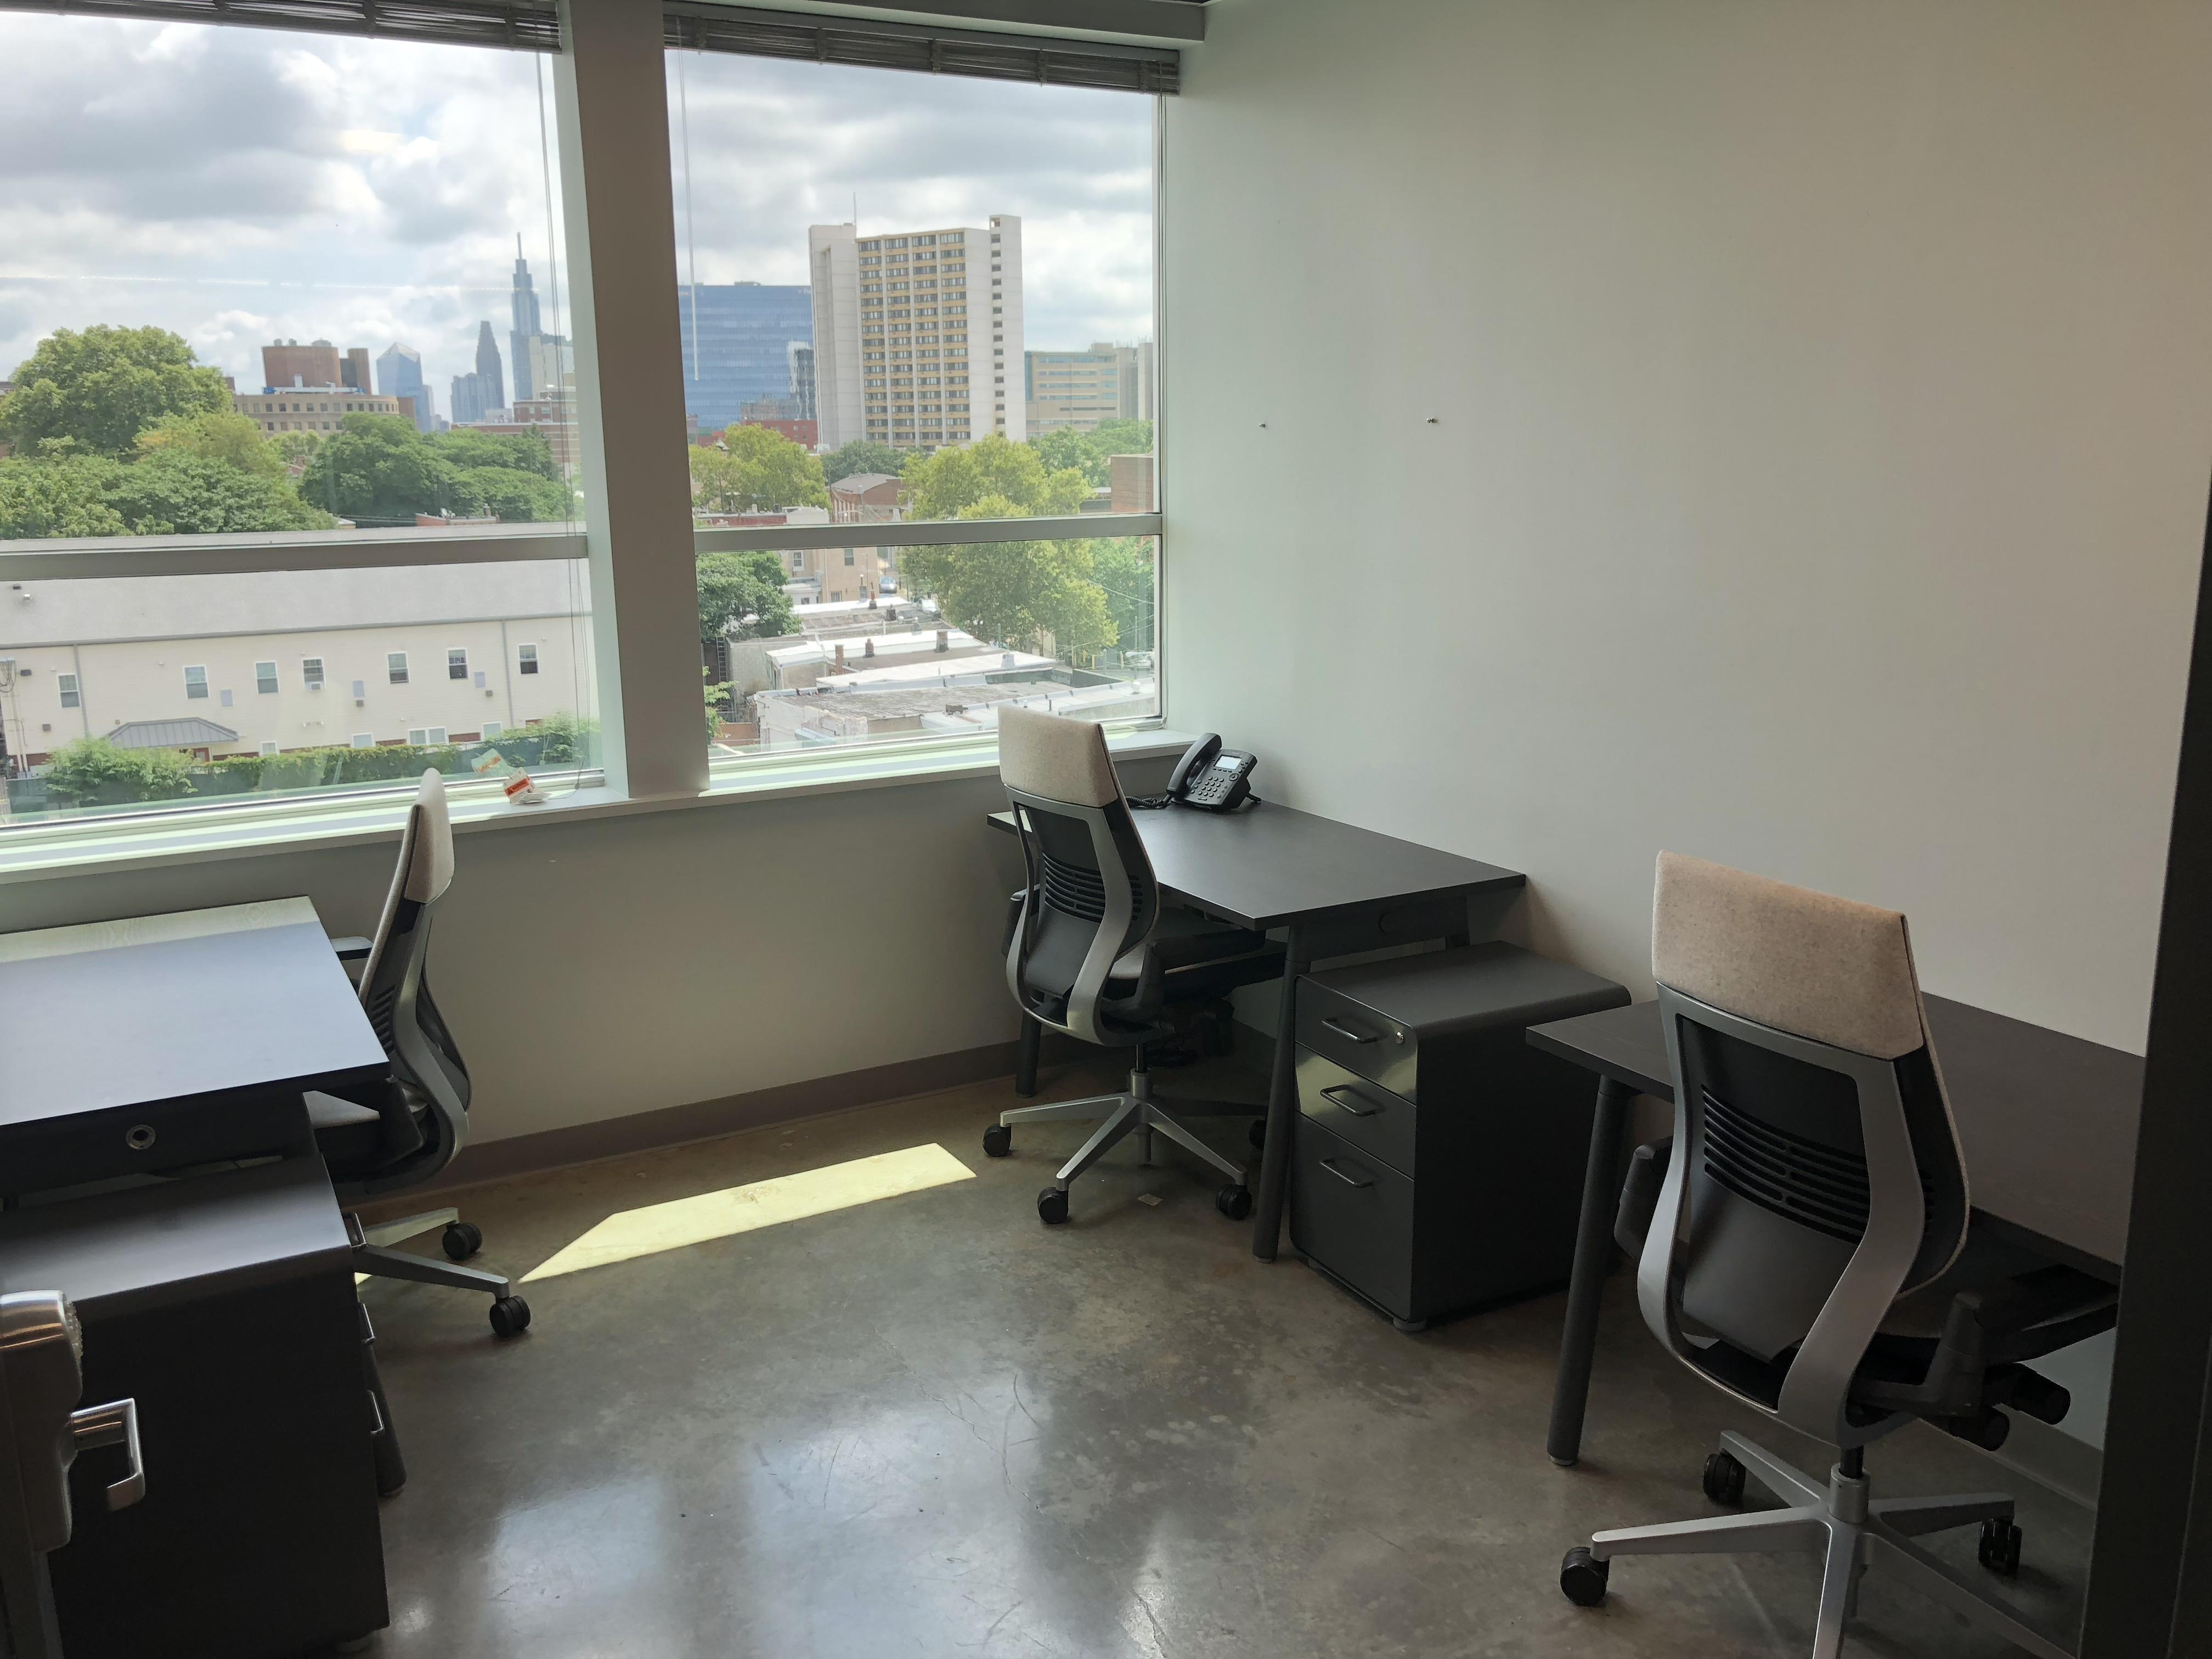 1776 University City - Office 114- 3 person office w/great view